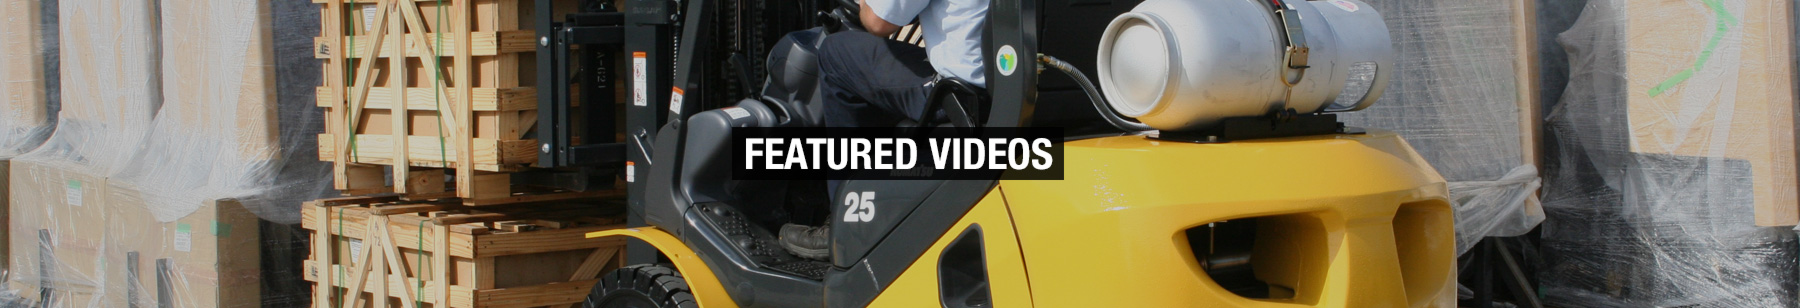 Material Handling Equipment - sales - rentals - parts - service - Videos - York County PA - Harford - Baltimore - Howard County MD - Mid-Atlantic Region